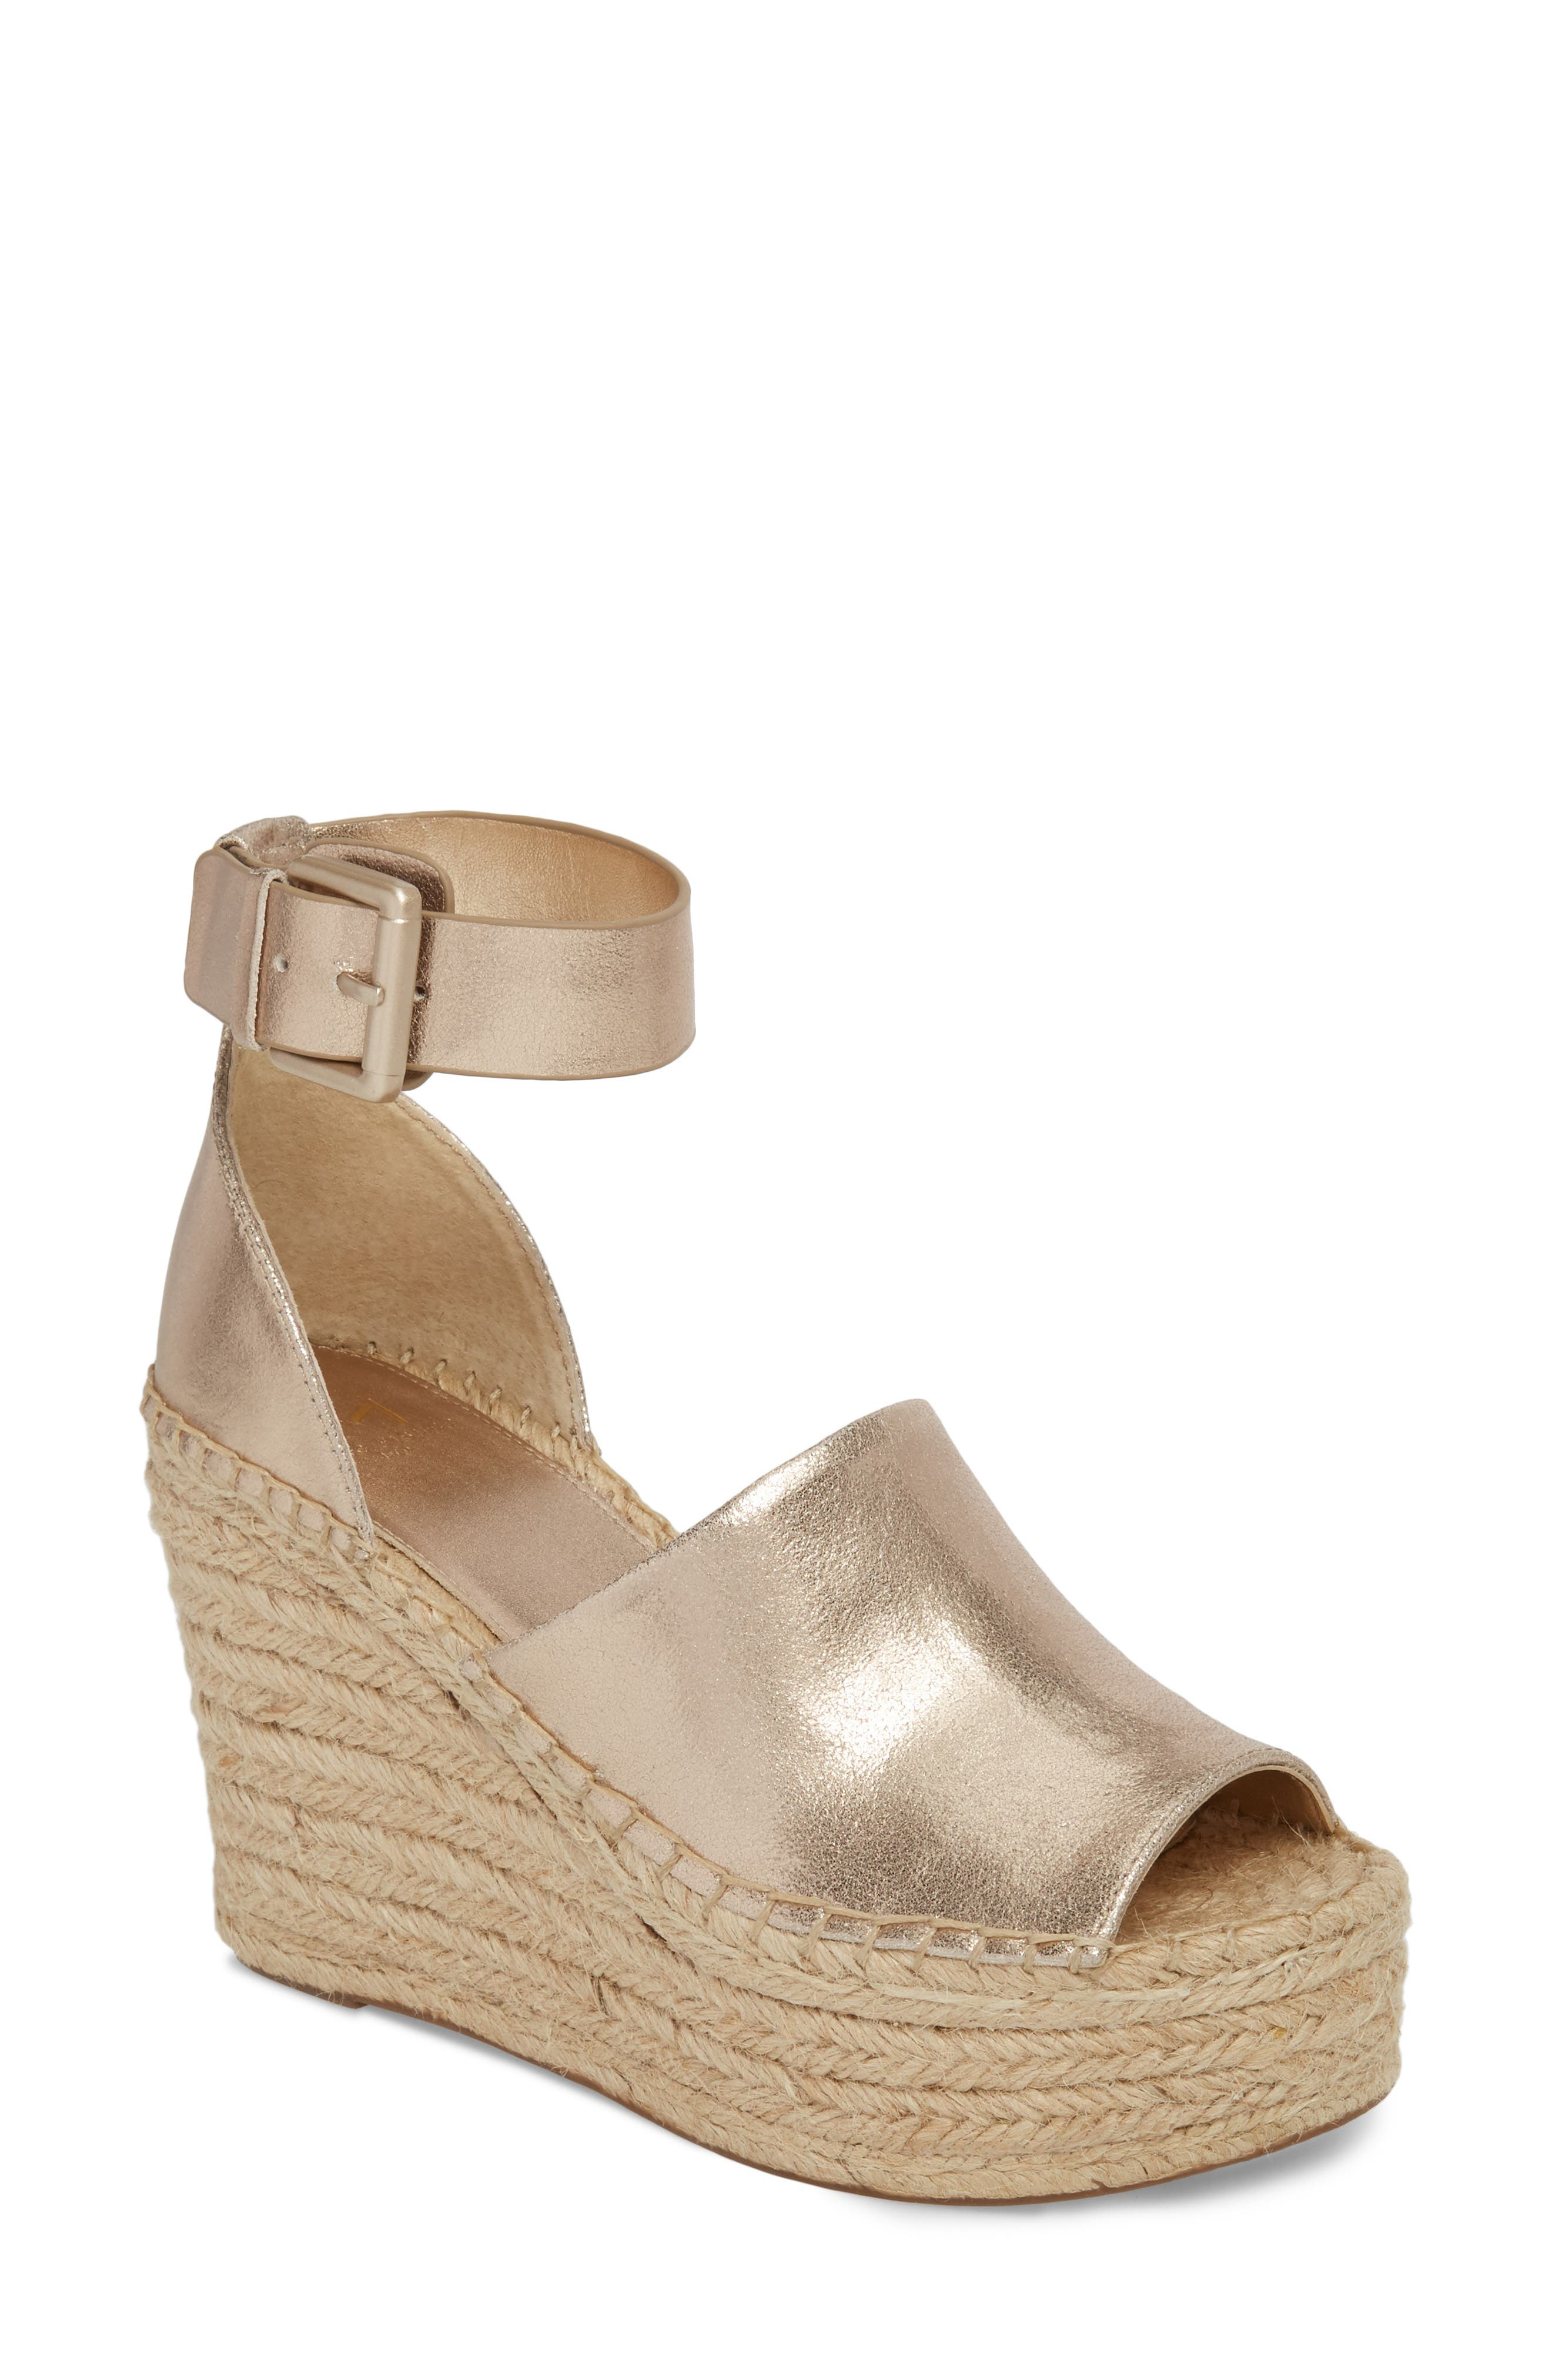 Adalyn Espadrille Wedge Sandal,                             Main thumbnail 1, color,                             Gold Leather